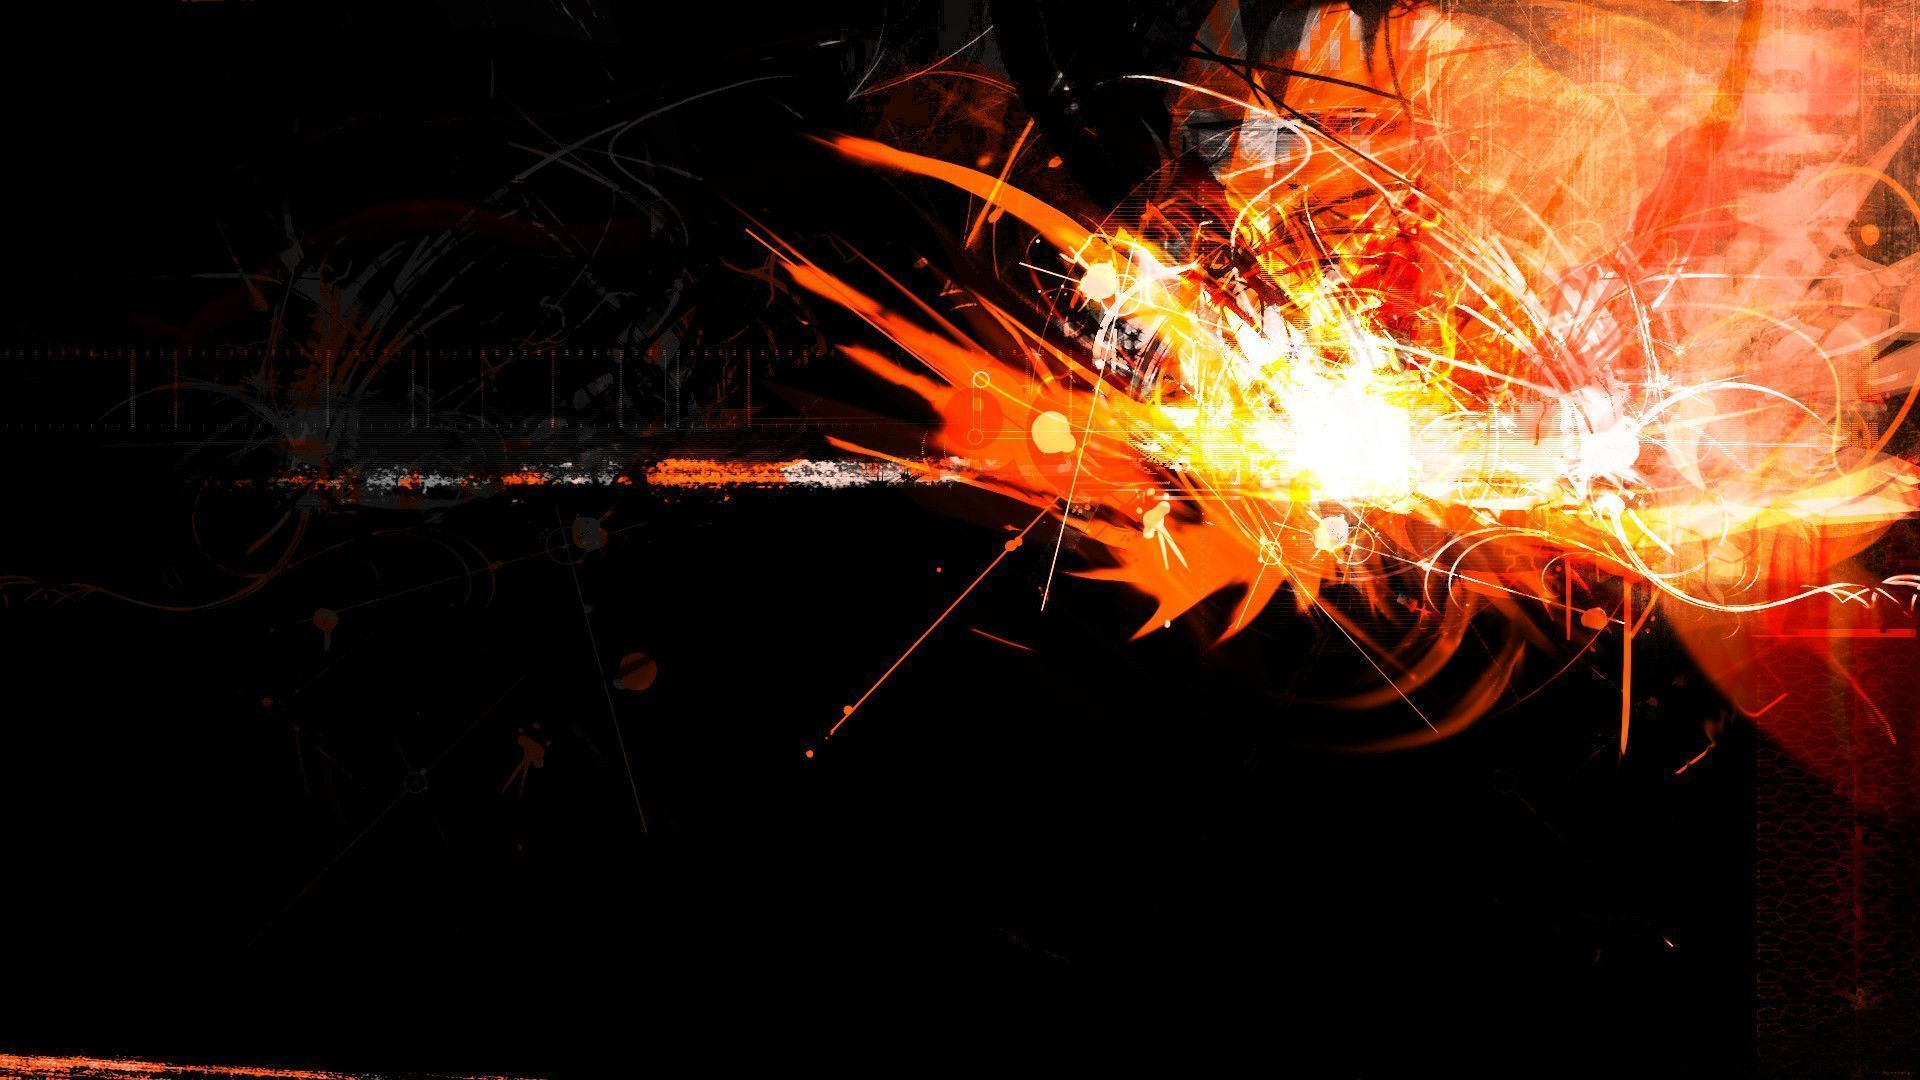 Black And Orange Backgrounds 001